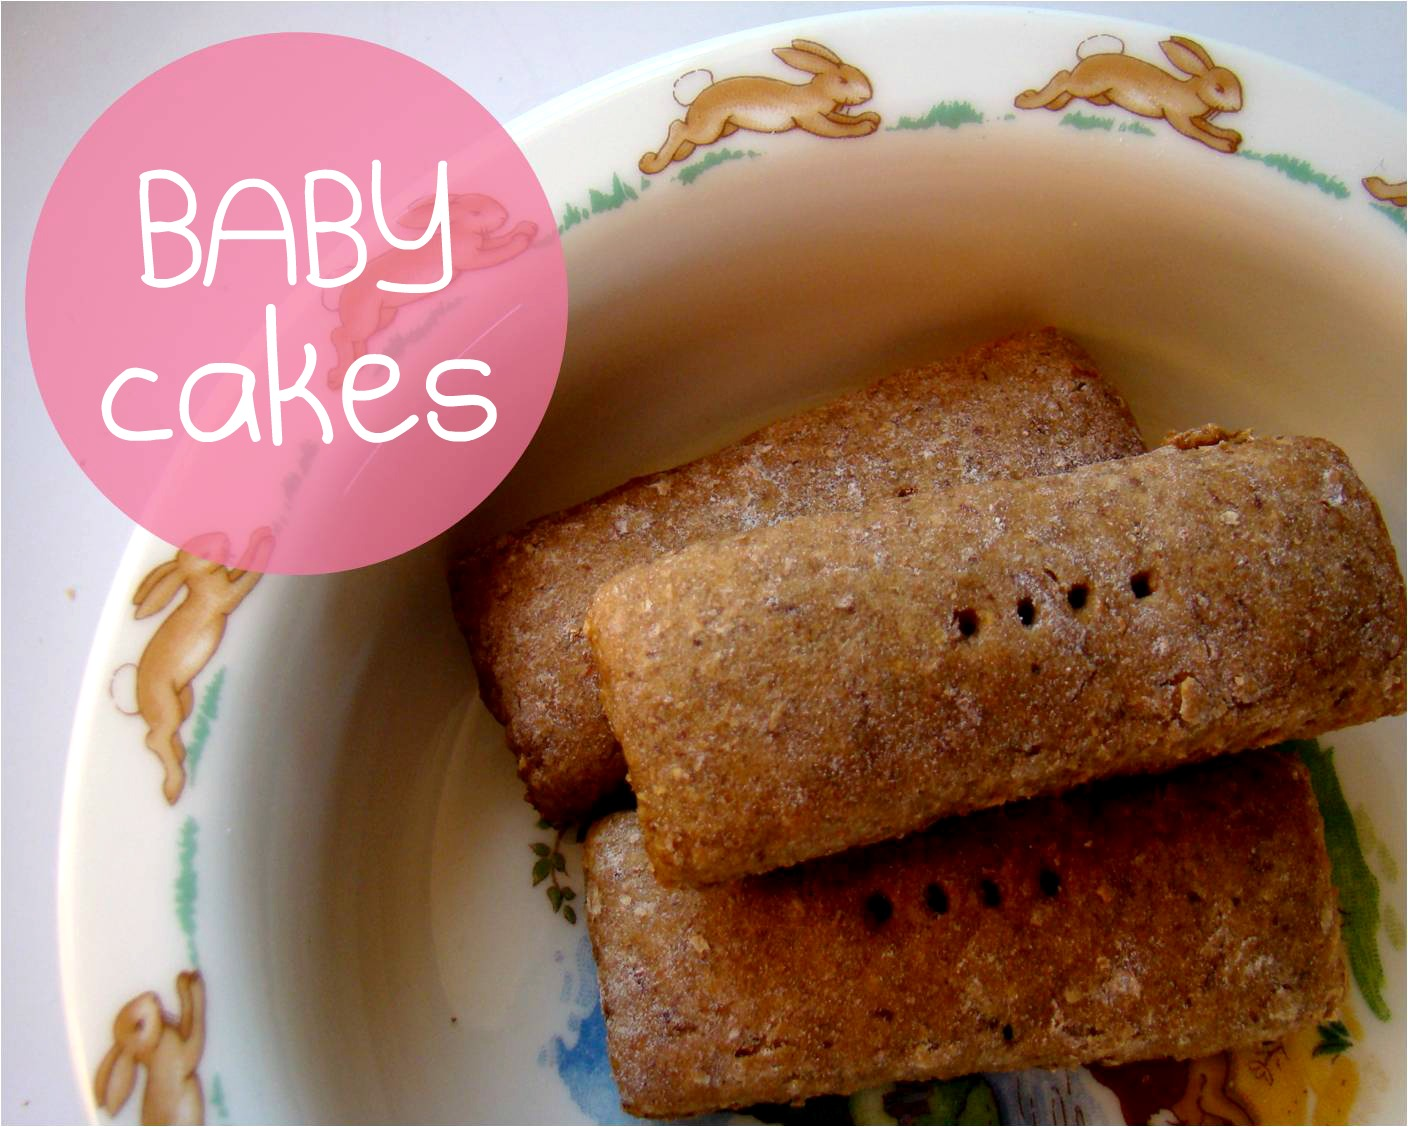 I Made These Baby Cakes For My Teething 9 Month Old Son Who Always Seems To Have The Munchies With Whole Wheat Flour And A Jar Of Strained Prunes